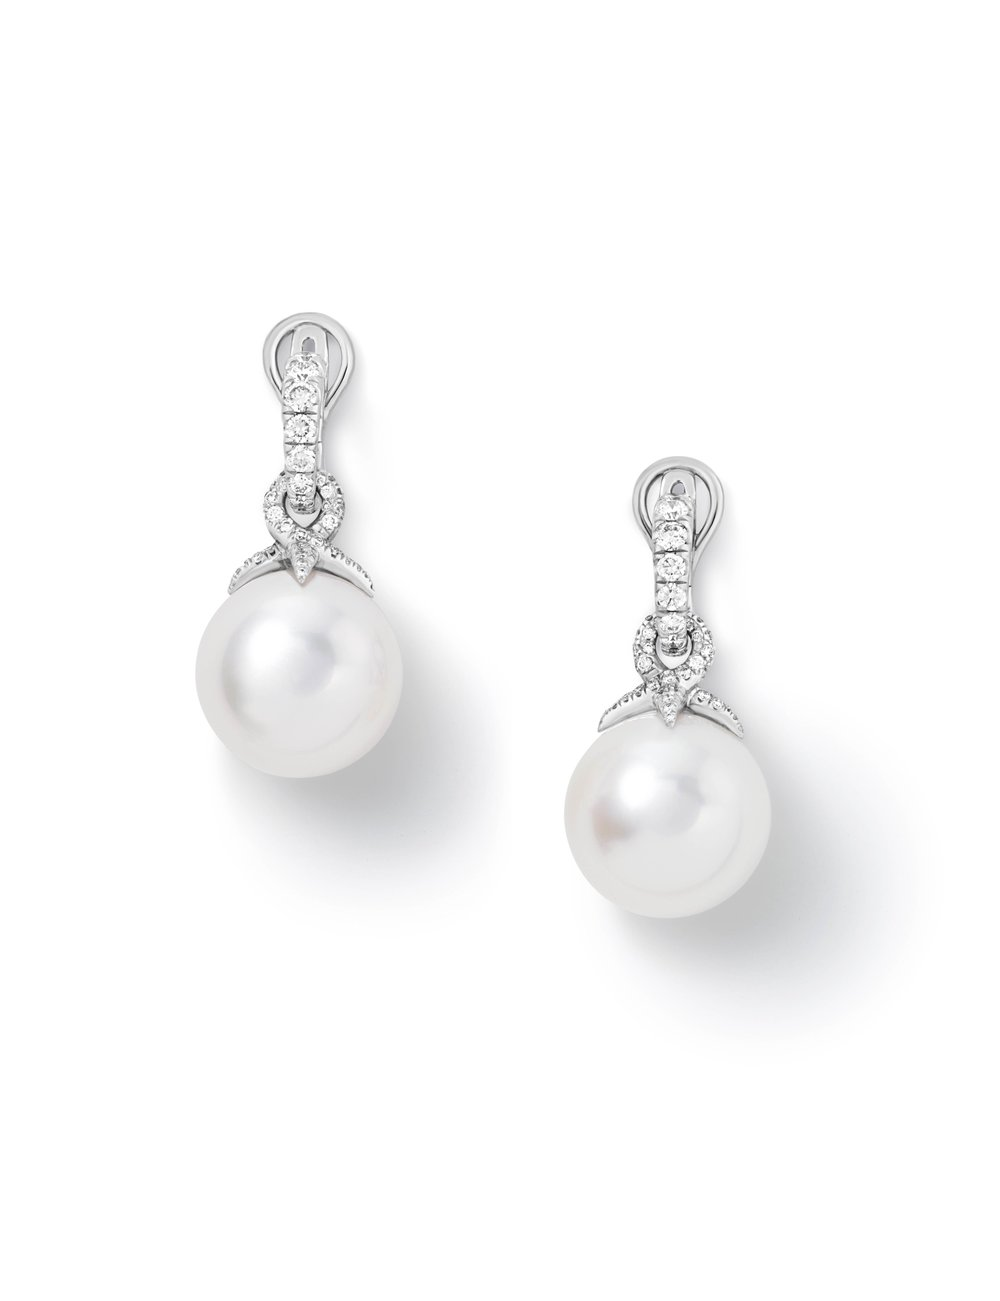 High Jewellery Pearl and Diamond Twist Drop in 750 White Gold Earrings by David Yurman